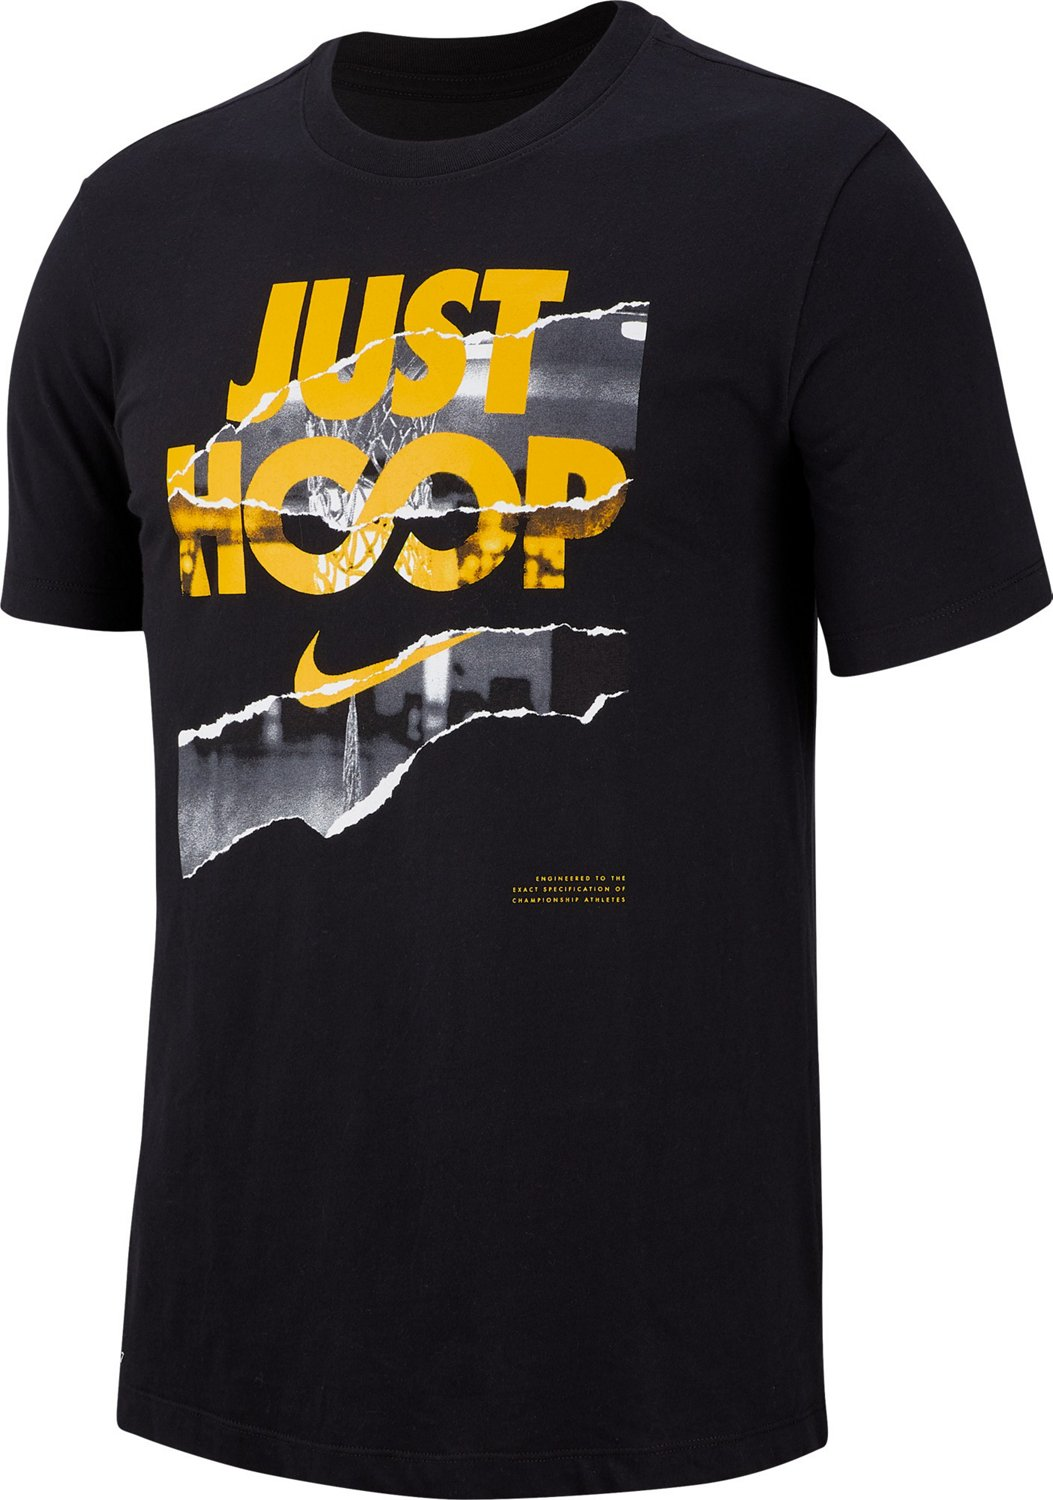 5b5e69c8 Nike Men's Dri-FIT Just Hoops Basketball T-shirt | Academy